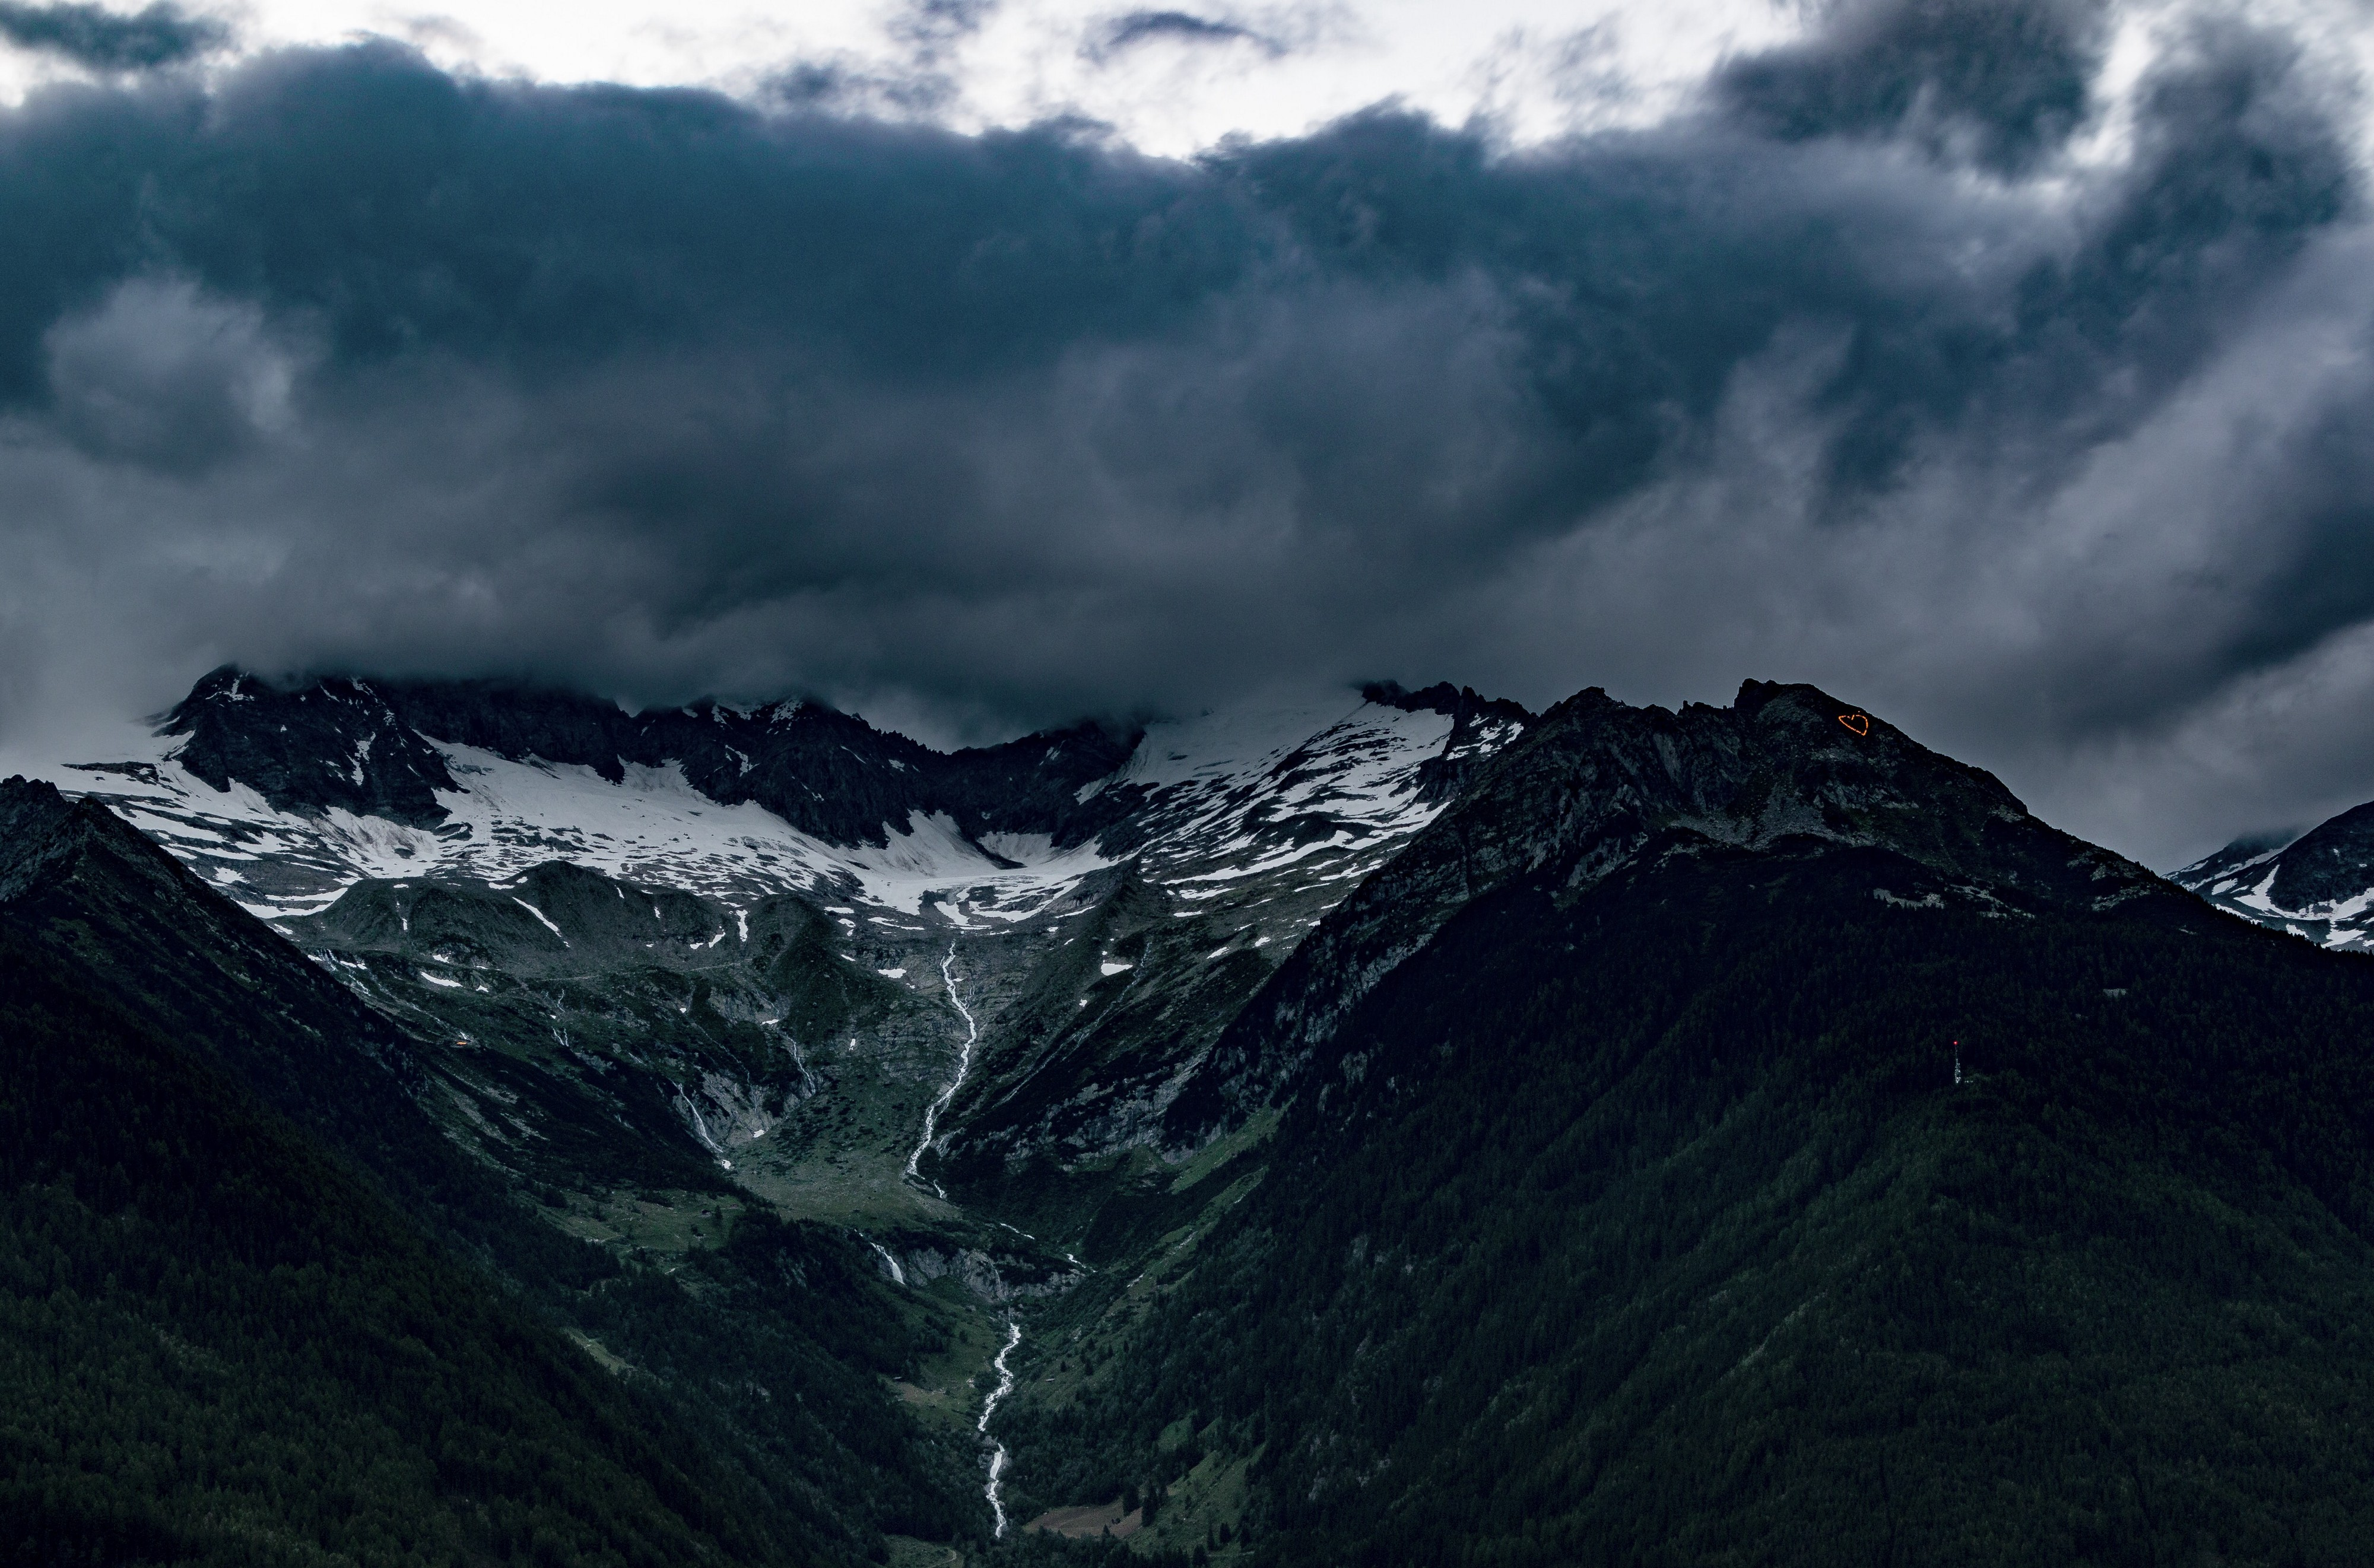 Mountain range covered by storm clouds